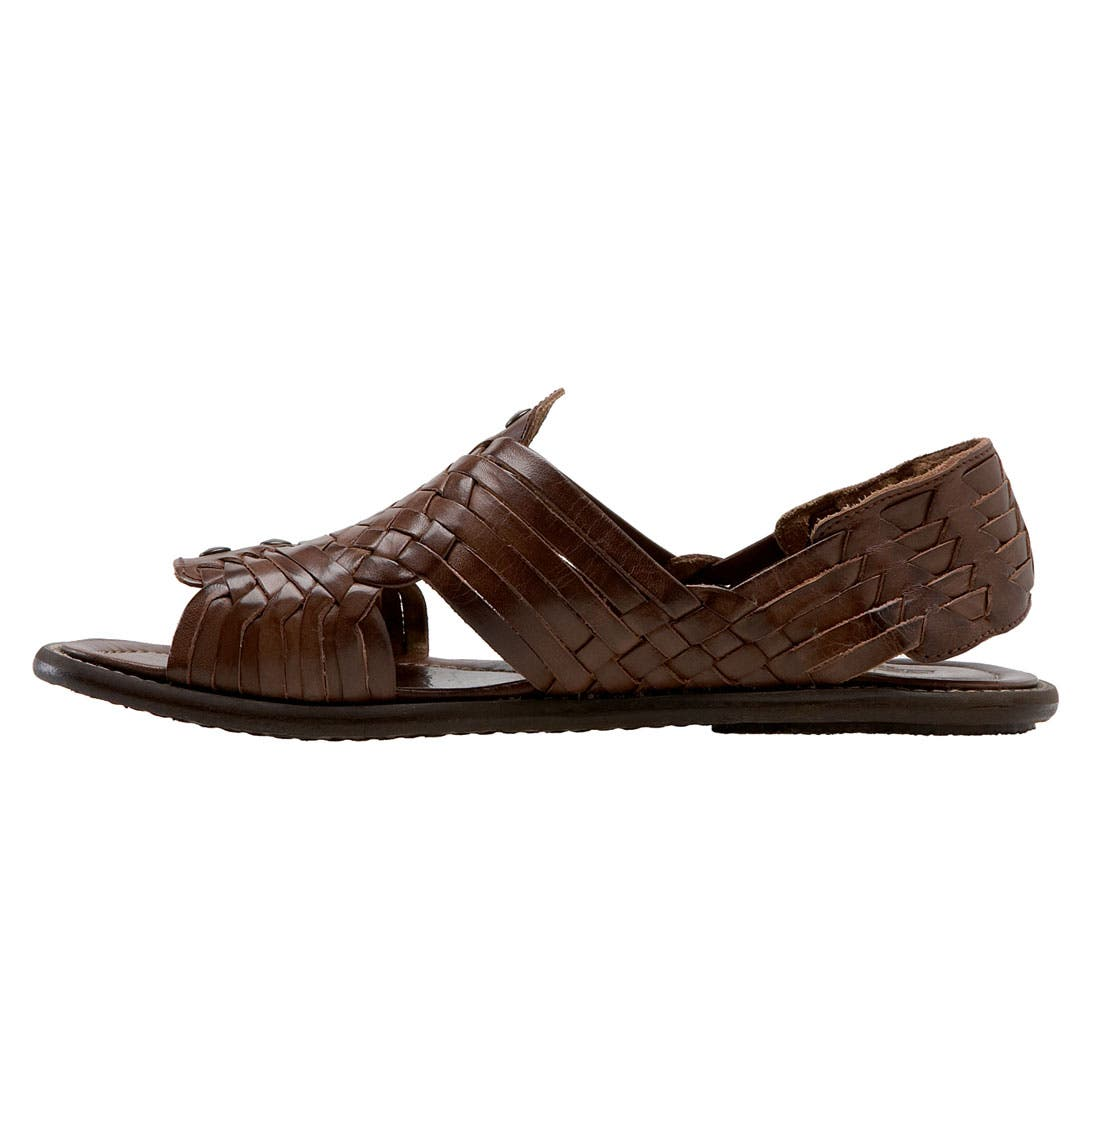 Alternate Image 3  - Bed Stu 'El Duque' Sandal (Men)